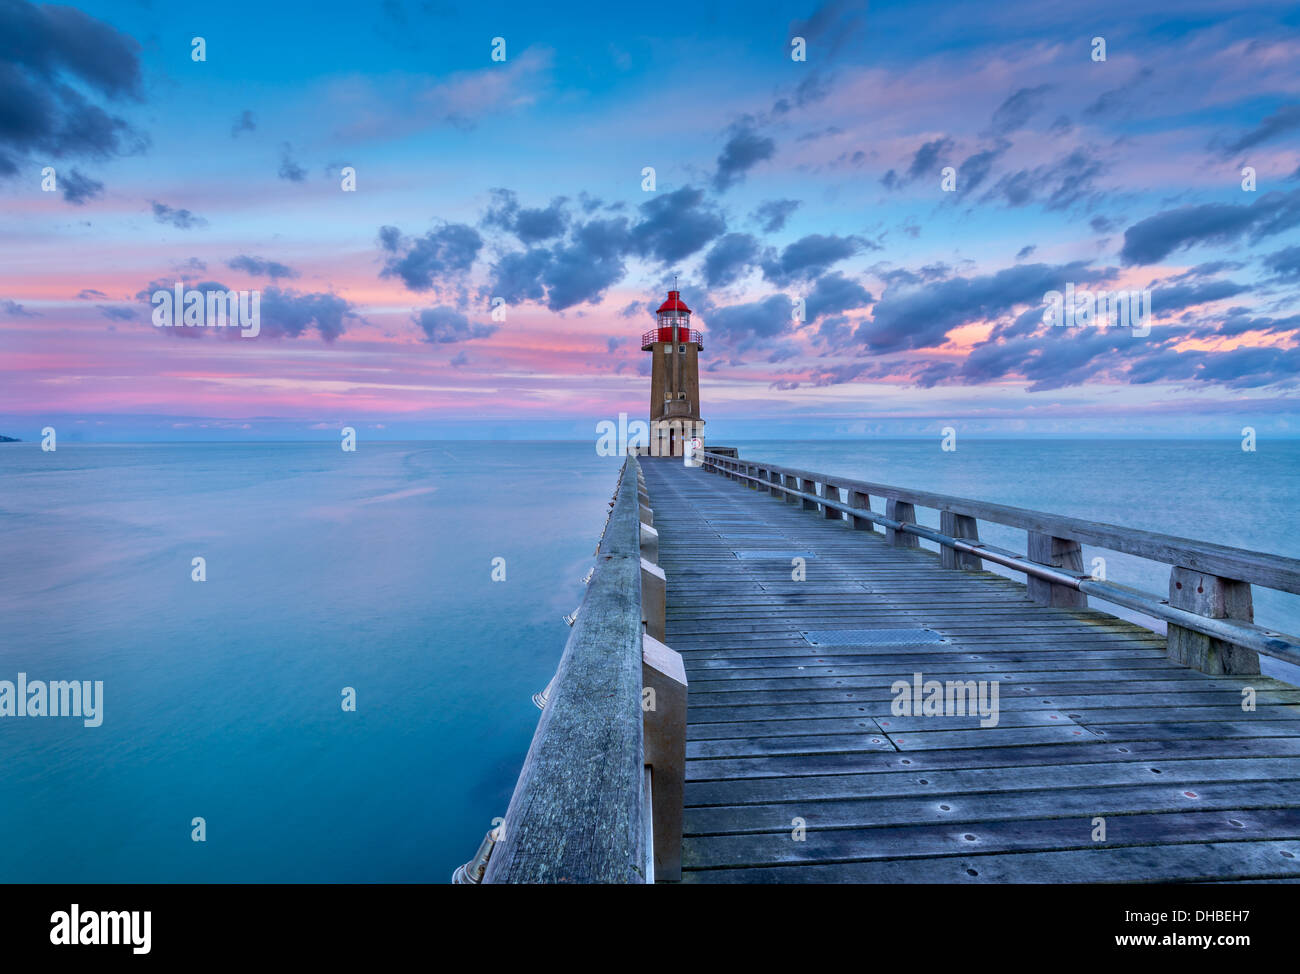 Lighthouse. Fecamp Lighthouse. France Normandie - Stock Image